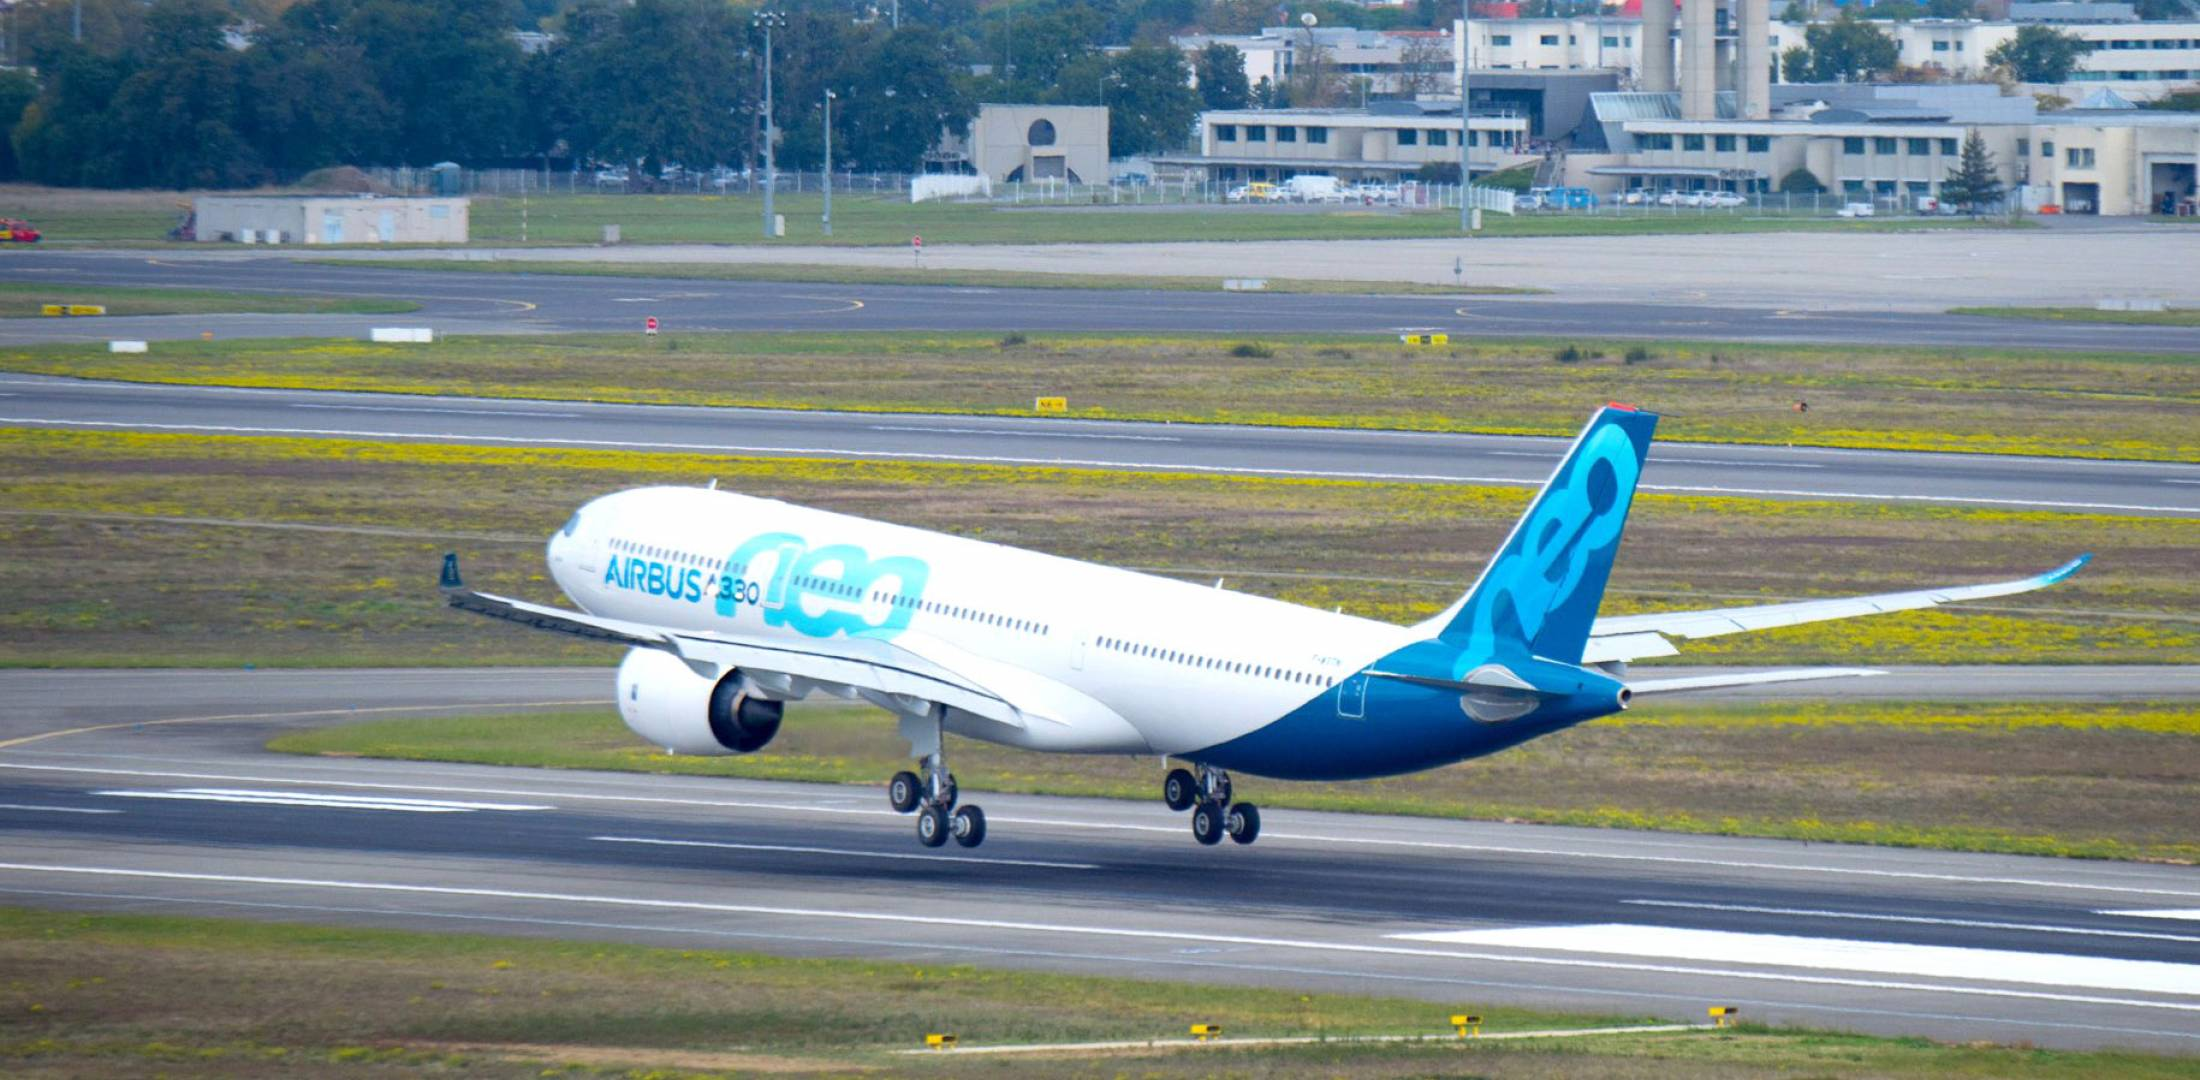 Airbus has a 1,100-flight-hour test campaign planned for the A330-900,  aimed at achieving EASA and FAA type certification in mid-2018.